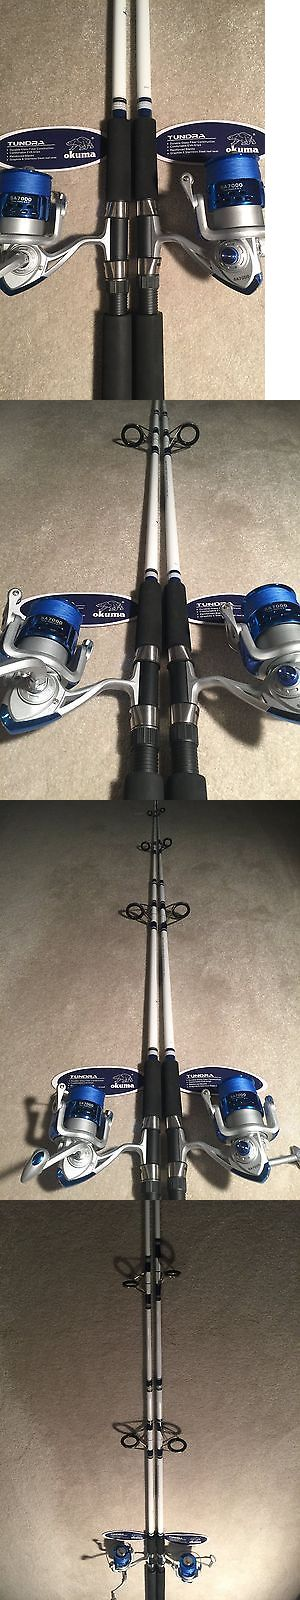 Saltwater Combos 179959: Two Okuma Tundra 8' Surf Spinning Rod And Sa7000 Spinning Reel Combos -> BUY IT NOW ONLY: $140.0 on eBay!